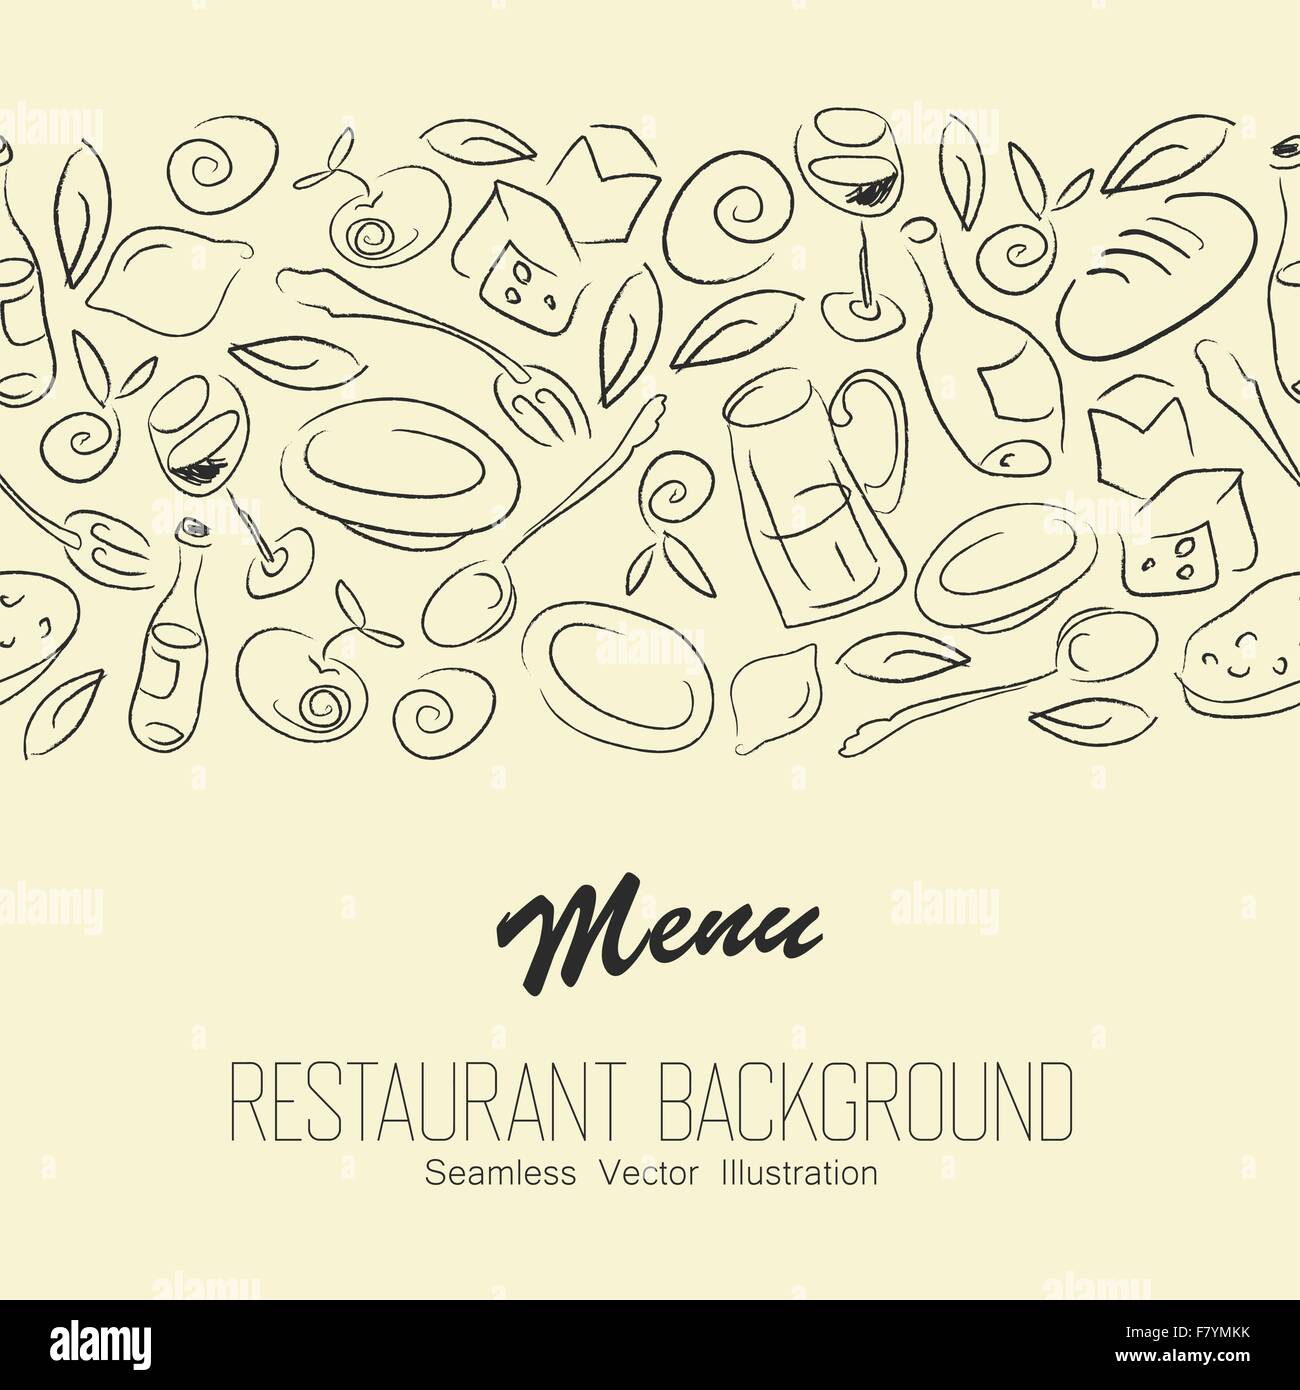 Seamless Resaurant Background With Copyspace. Vector - Stock Image